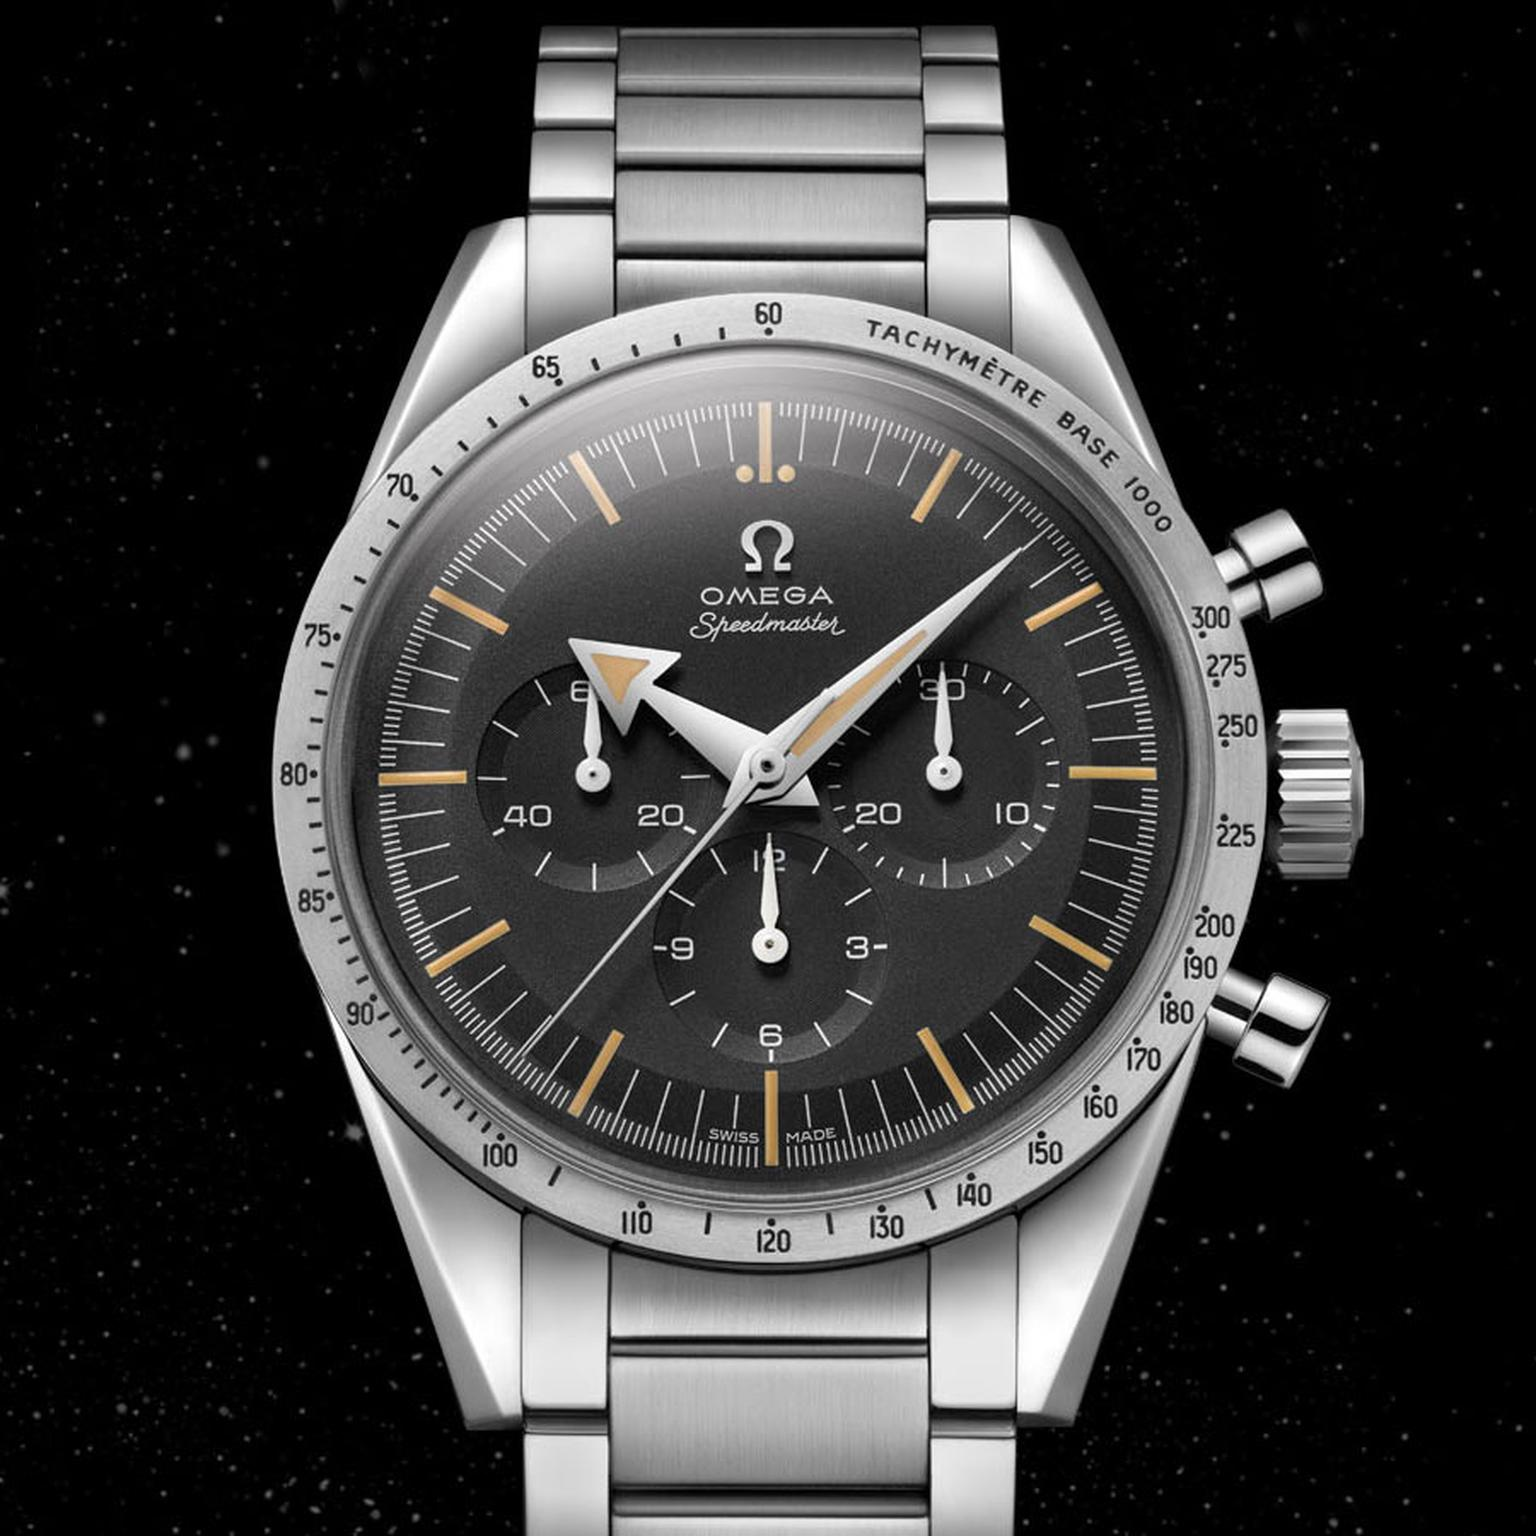 Omega Speedmaster 60th Anniversary edition watch